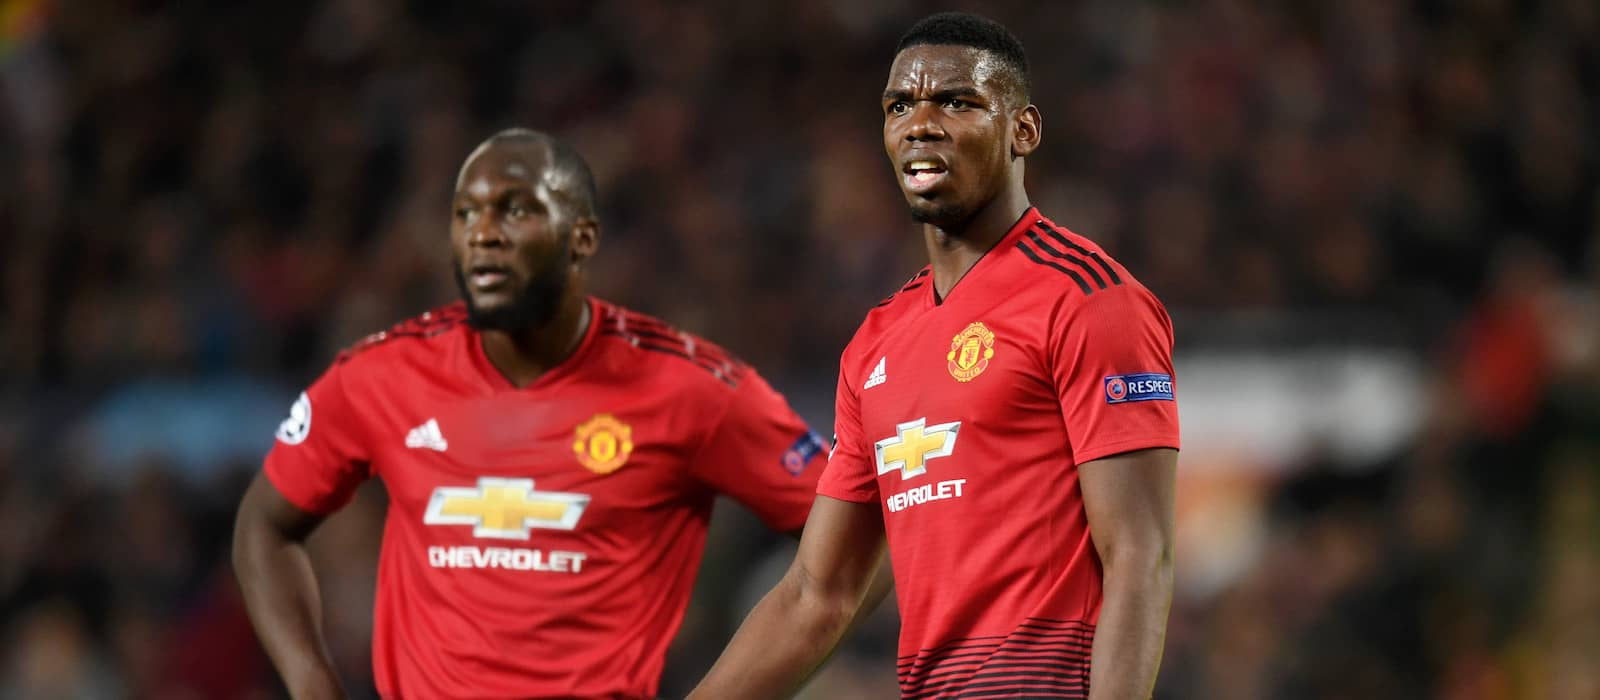 Real Madrid struggling to sign off on Paul Pogba transfer: report